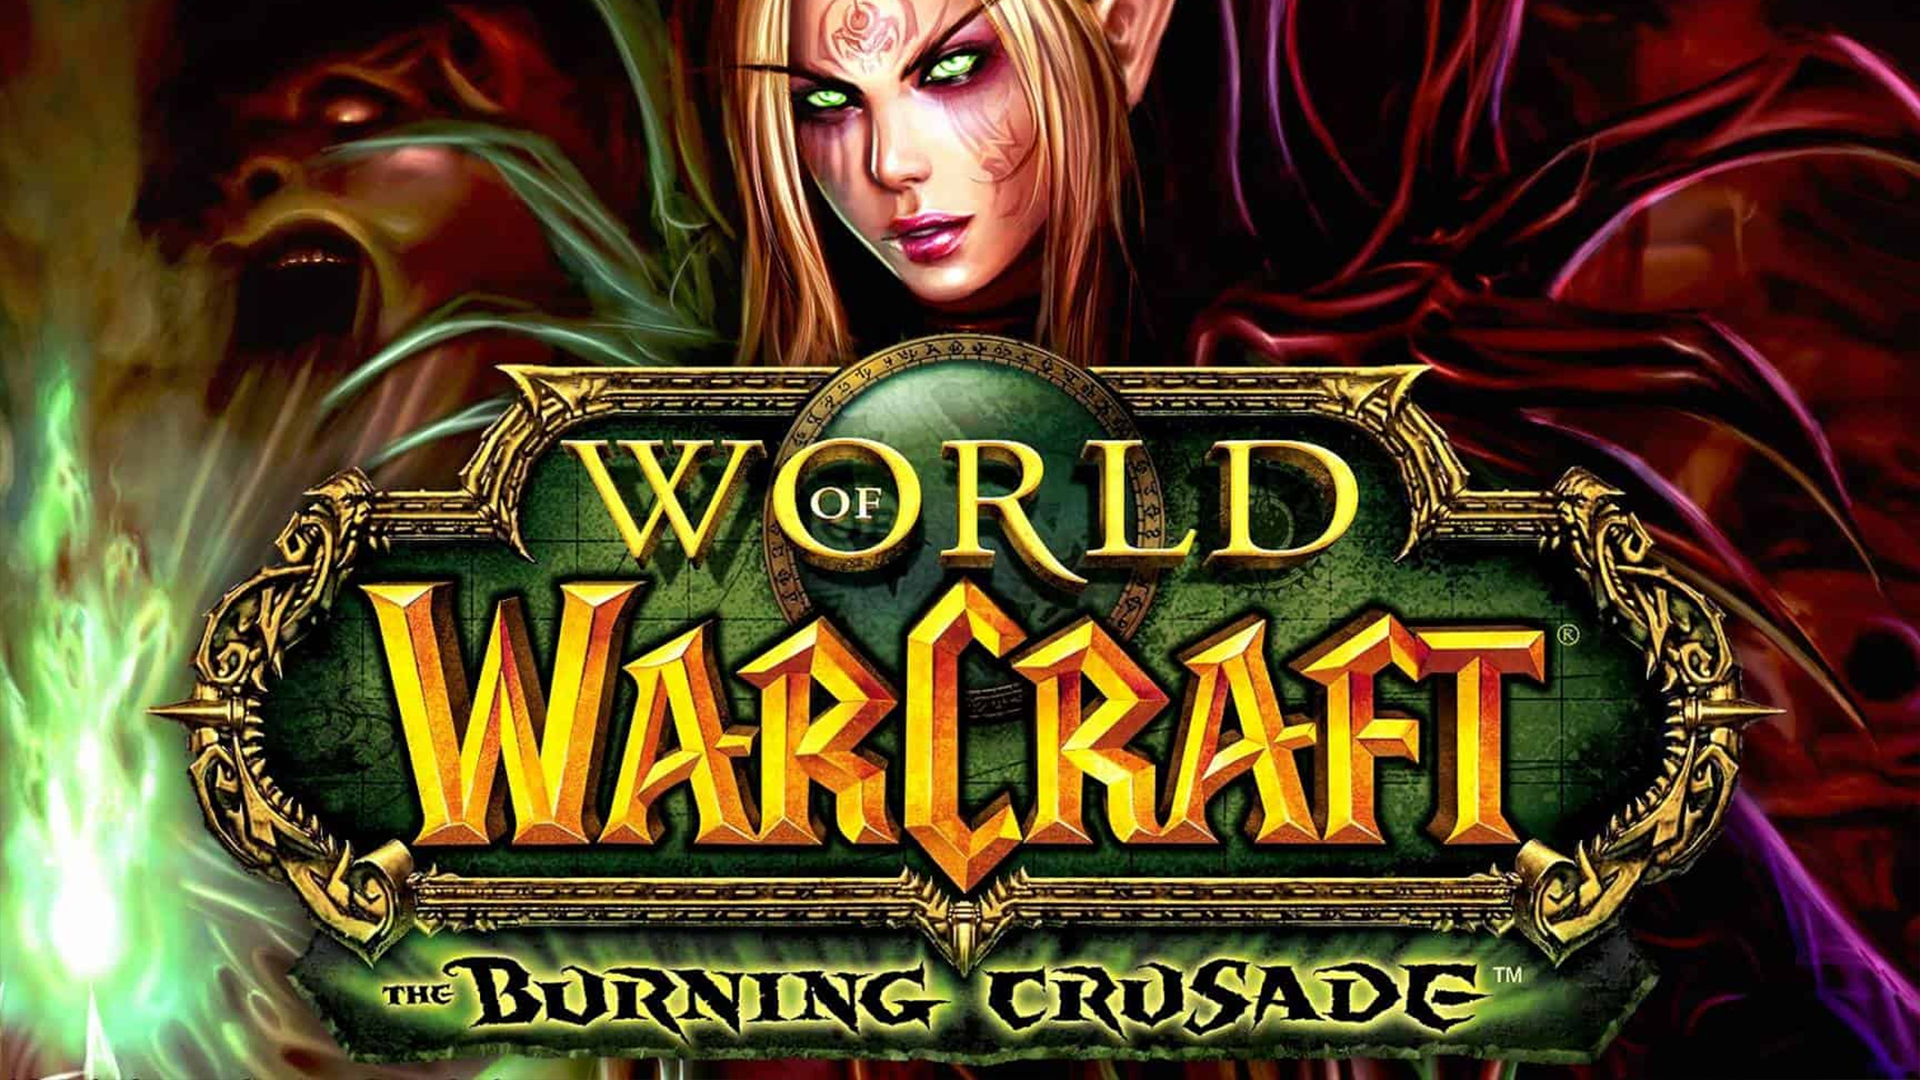 World warcraft burning crusade